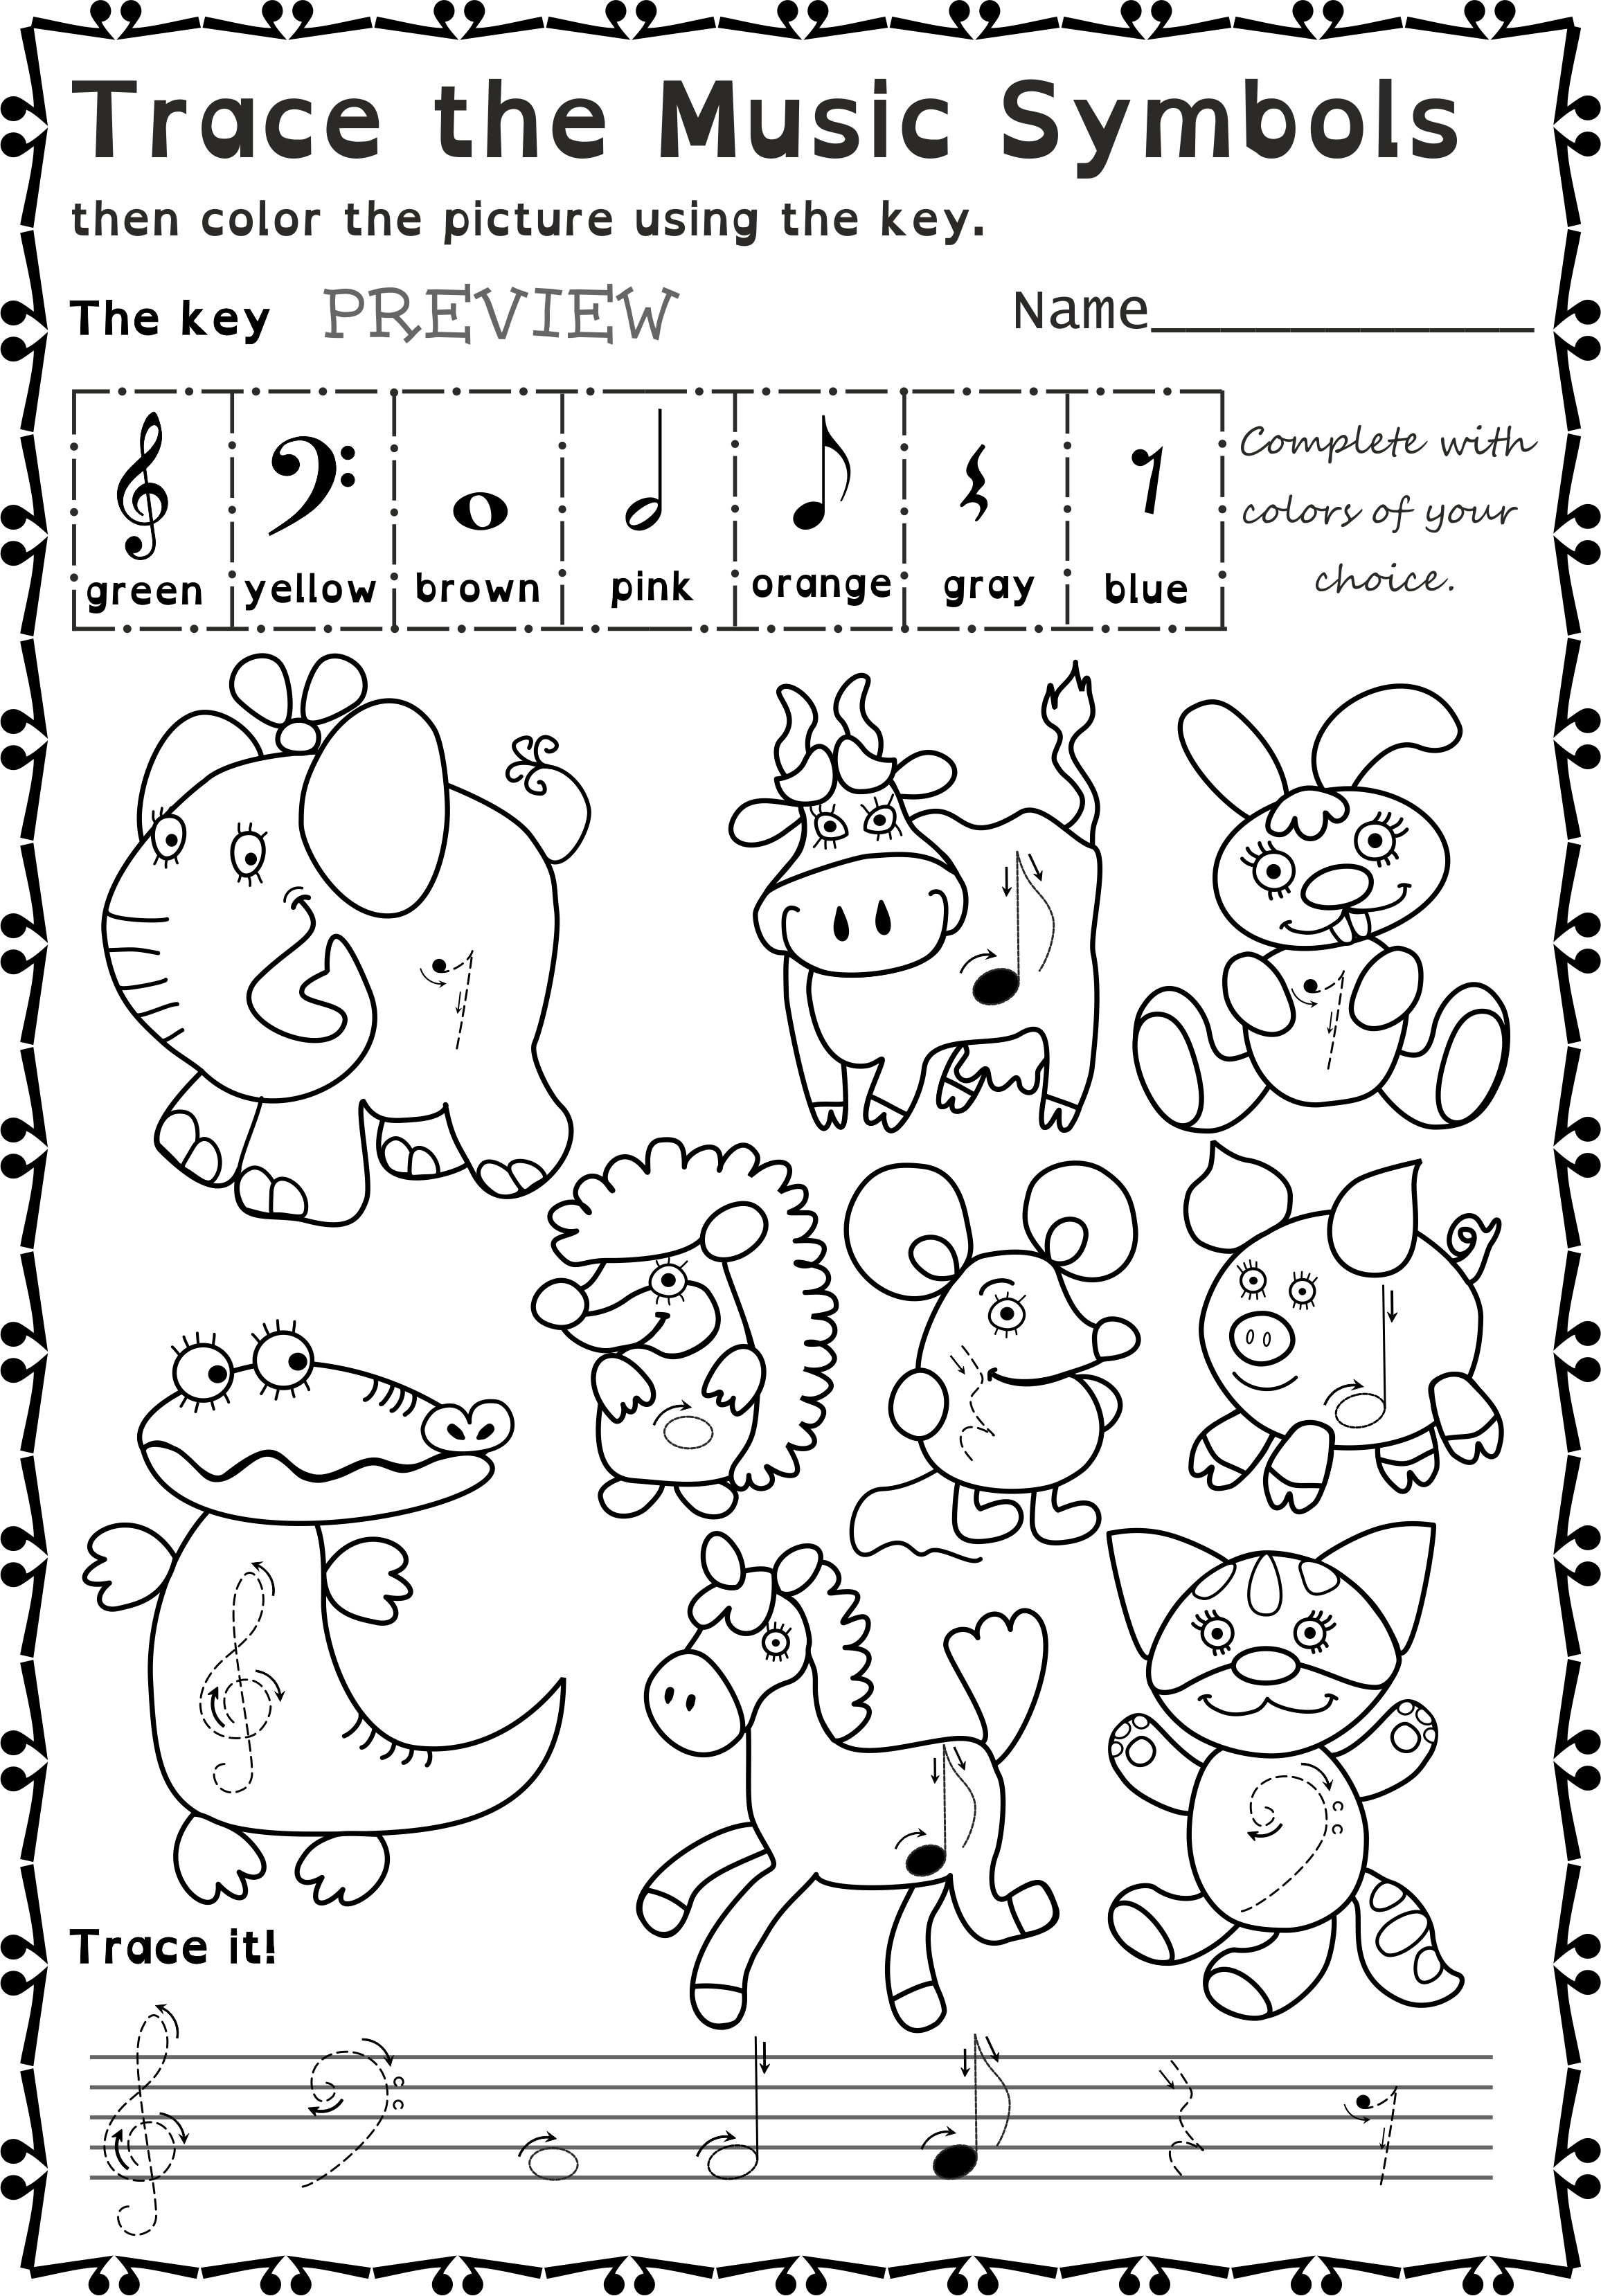 Music Symbols Trace And Color Worksheets For Beginners